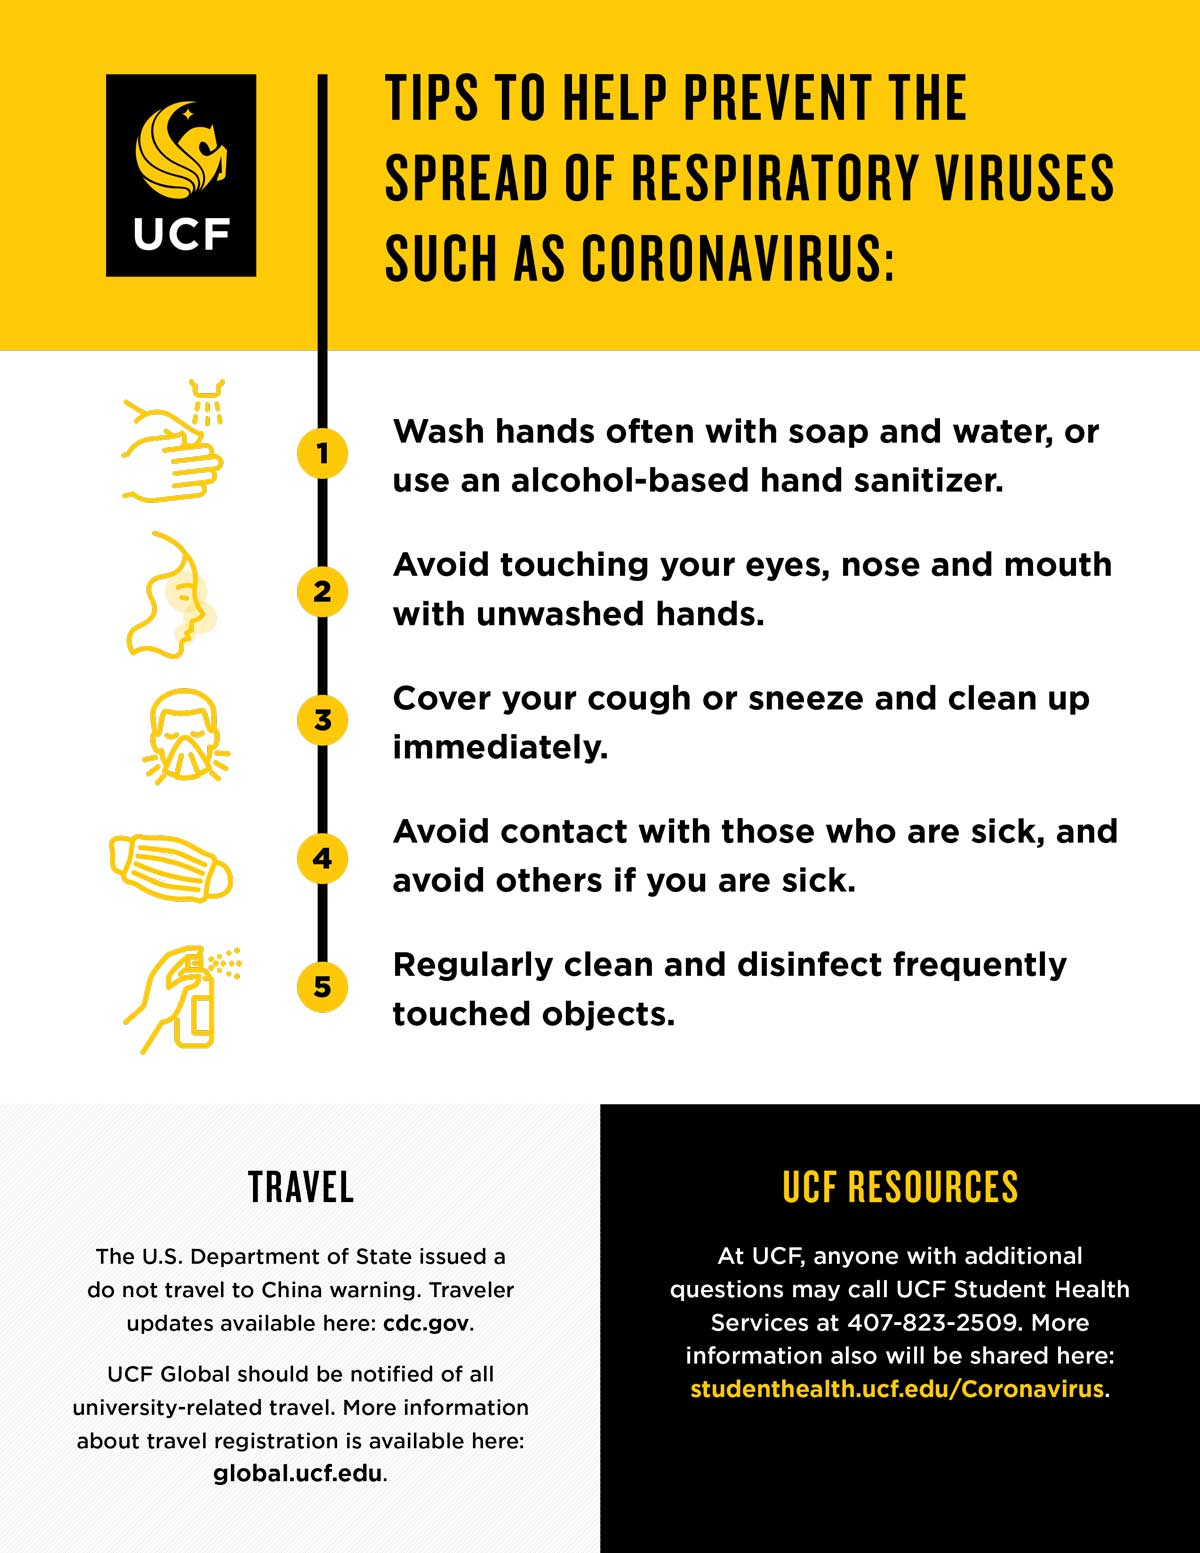 Flyer highlighting tips to prevent the spread of respiratory viruses